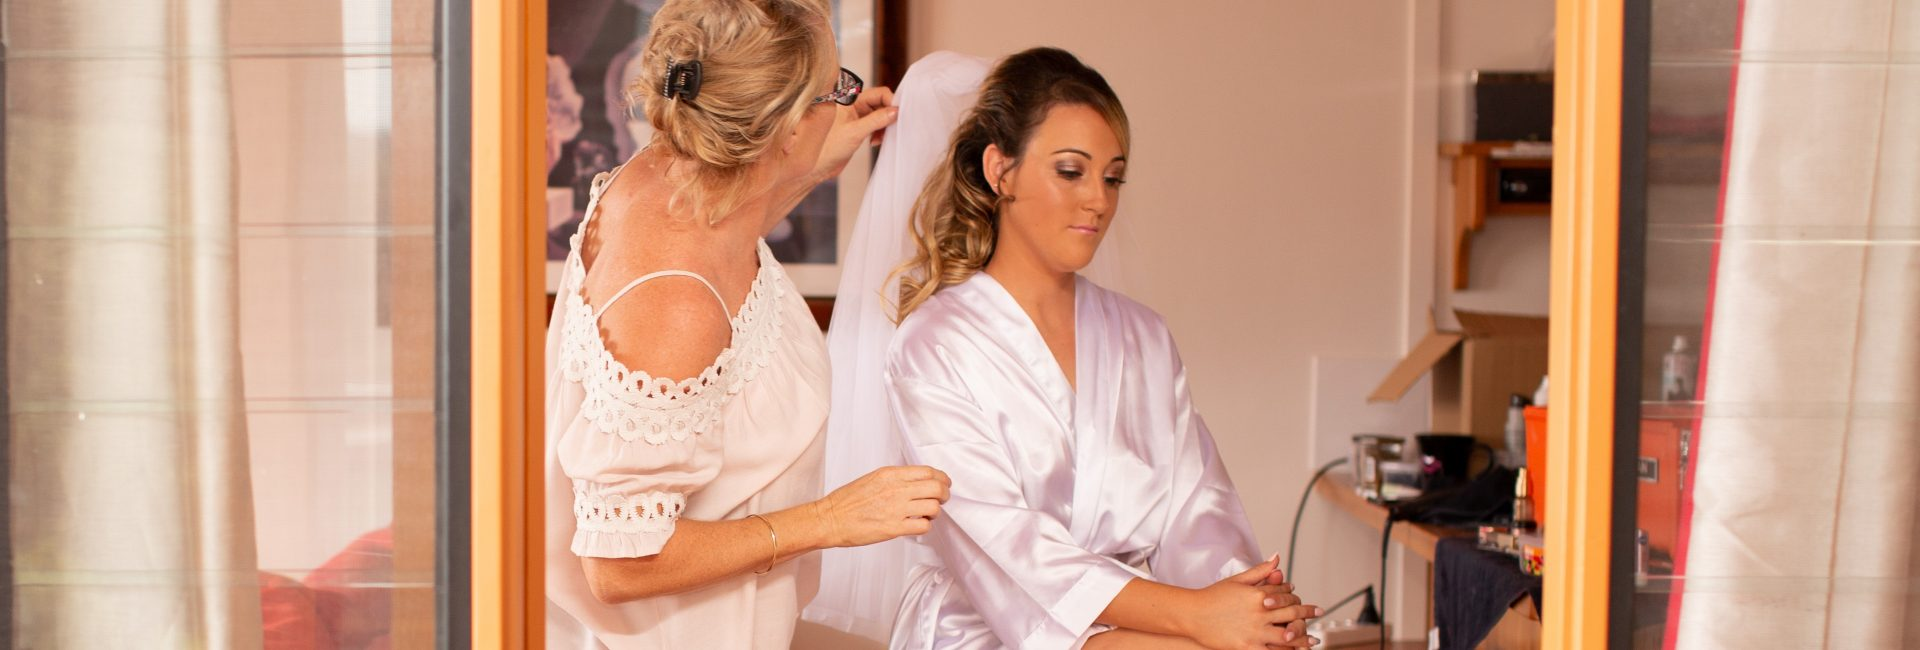 Bridal Hair & Makeup Specialist